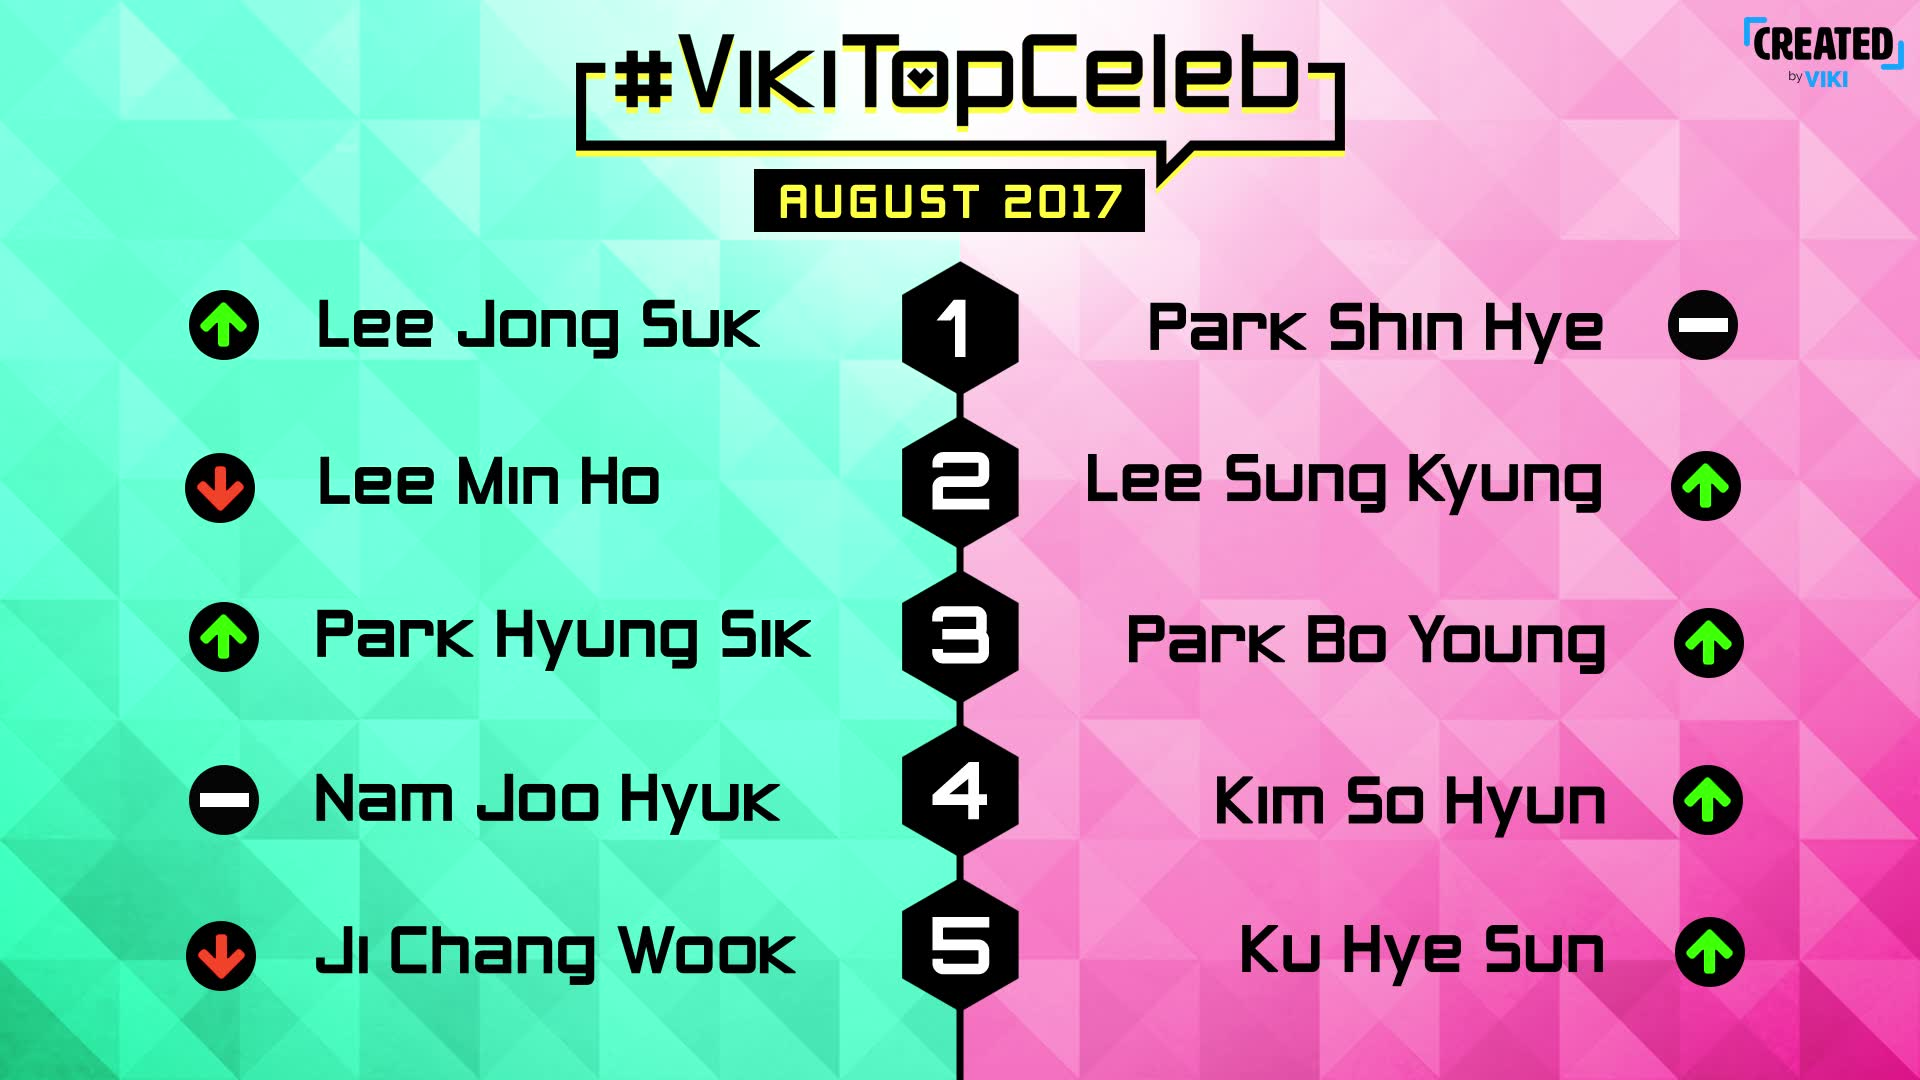 #VikiTopCeleb Episode 1: August 2017